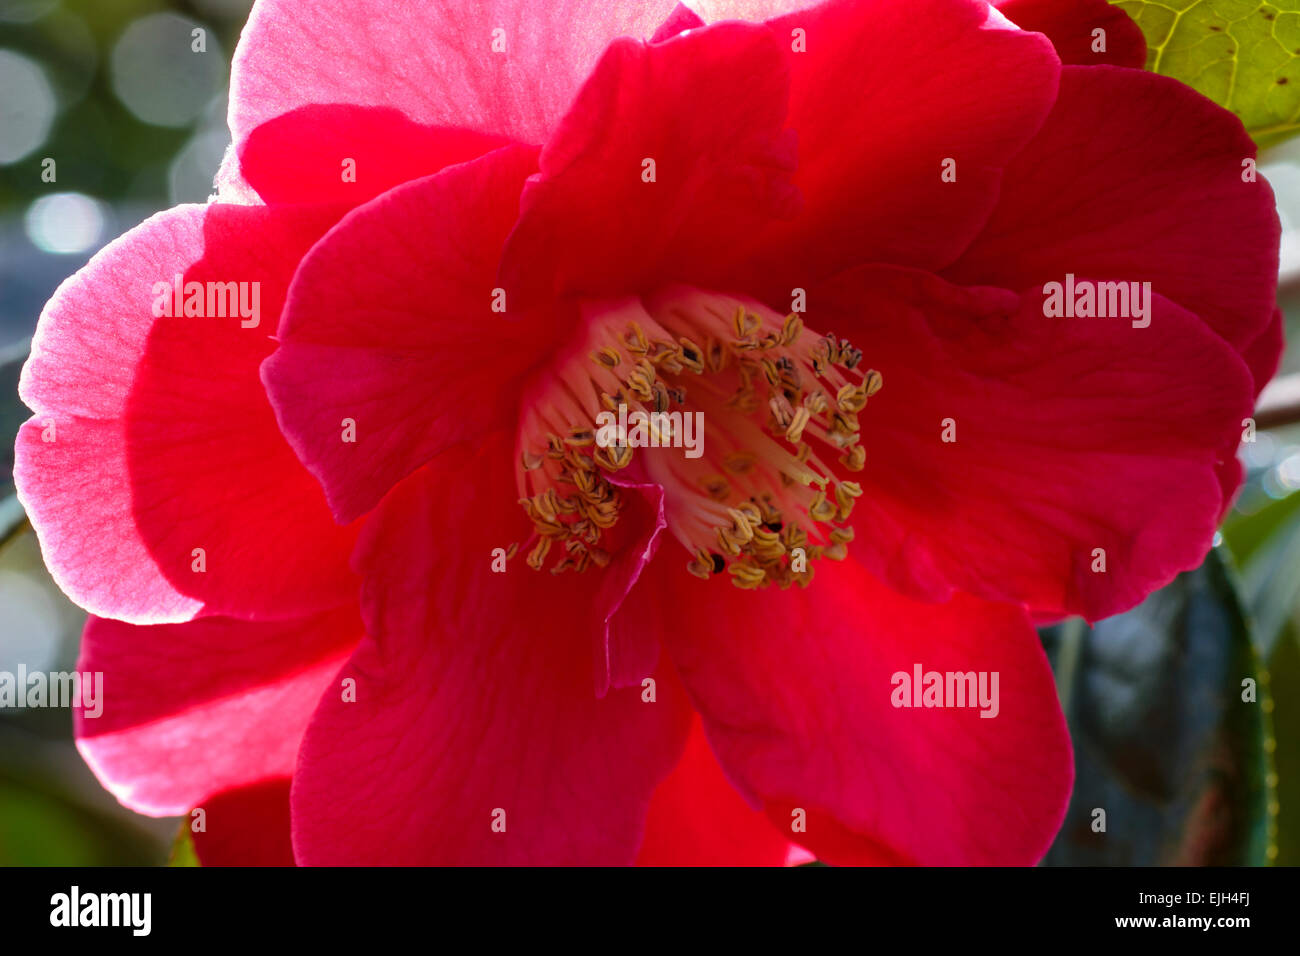 Close up of a single flower of Camellia reticulata 'Royalty' - Stock Image